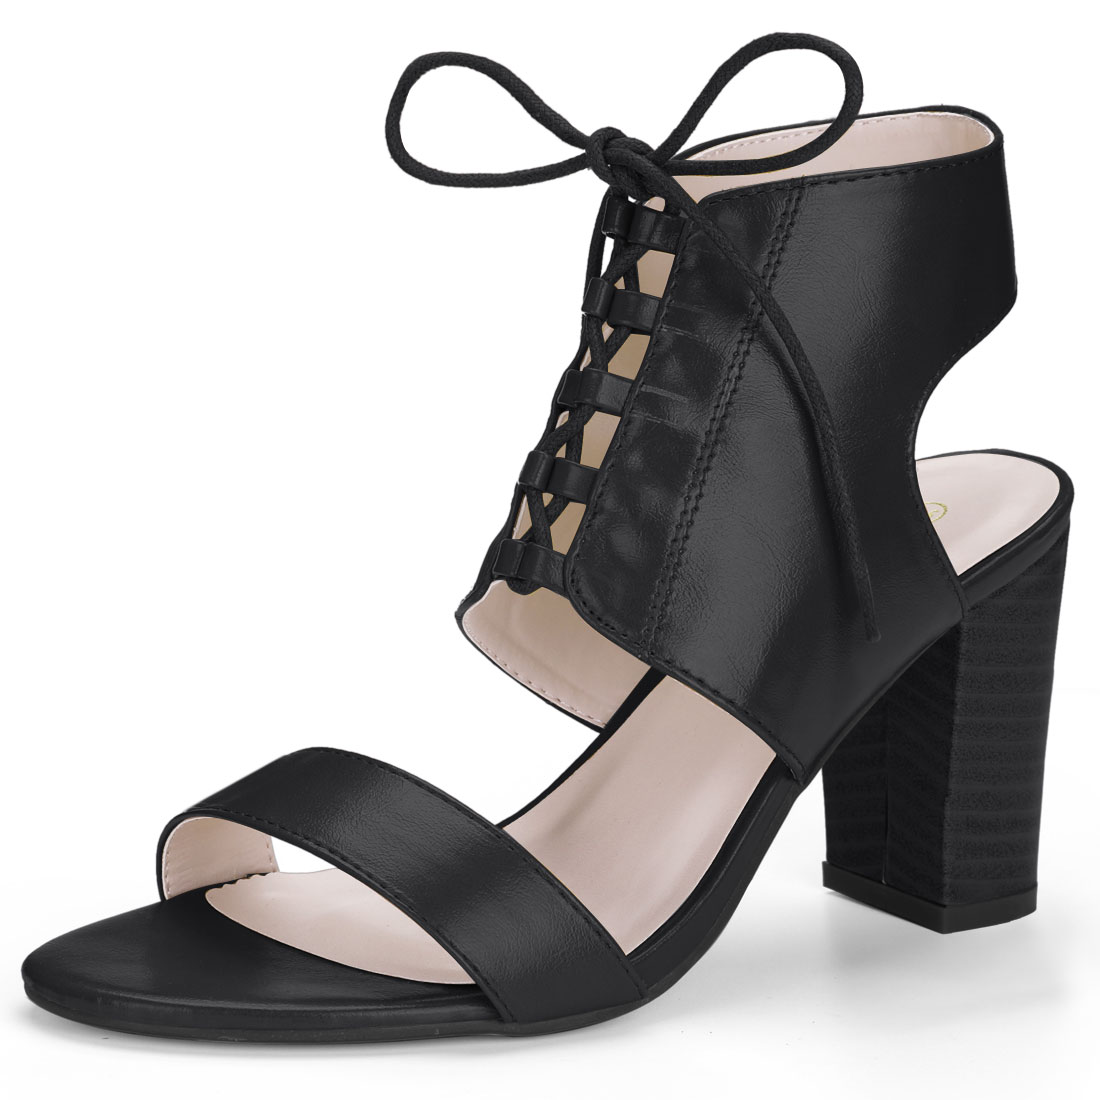 Women Stacked High Heel Open Toe Lace Up Sandals Black US 8